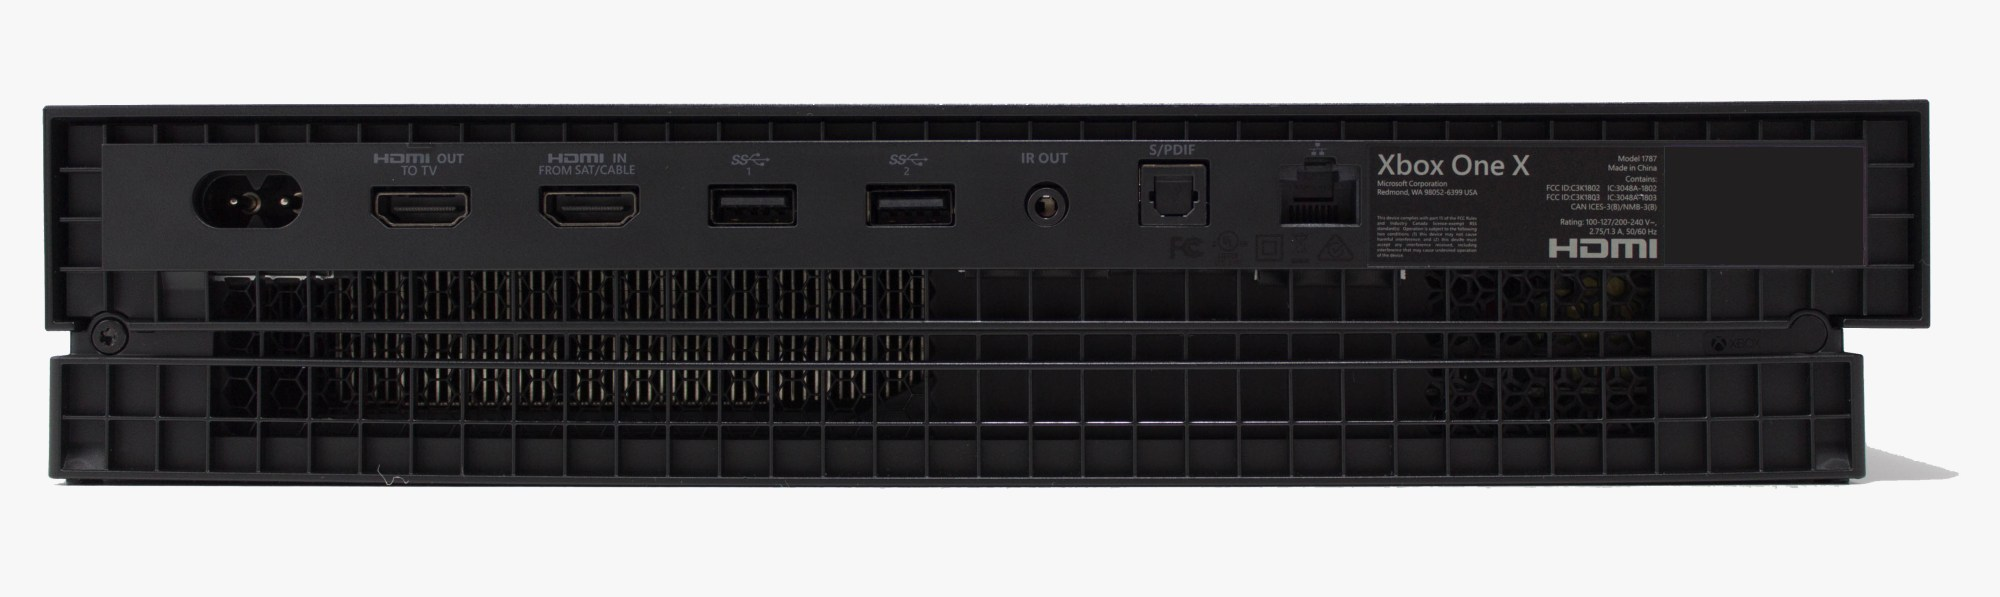 hight resolution of the back features the hdmi input and output ports so microsoft has kept the tv input capabilities intact there s also two usb 3 0 type a ports